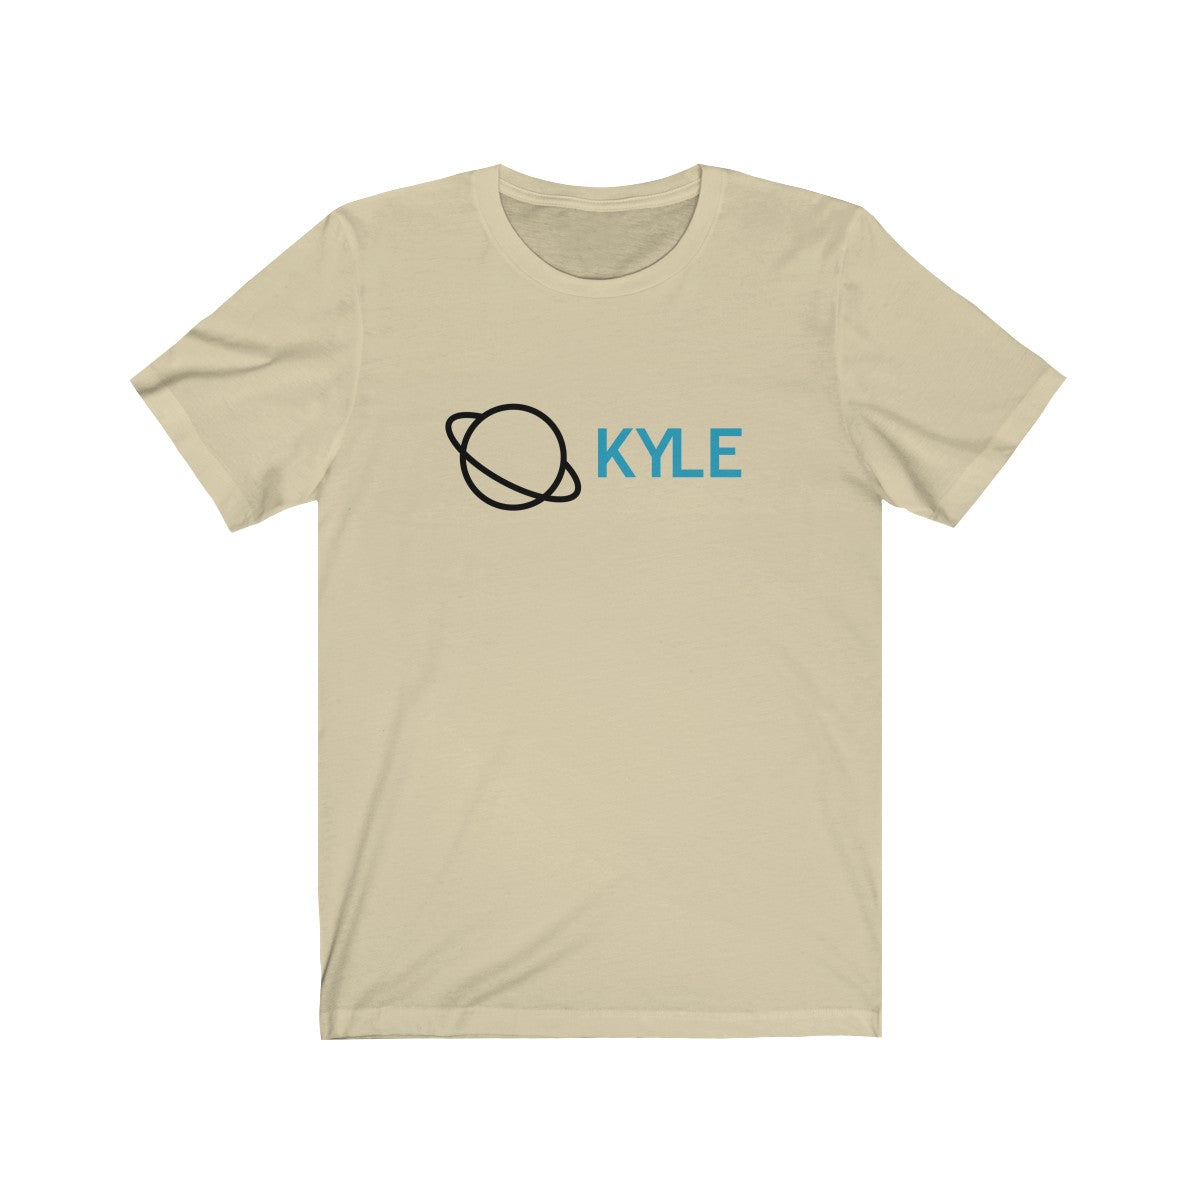 Kyle Thomas Short Sleeve Tee